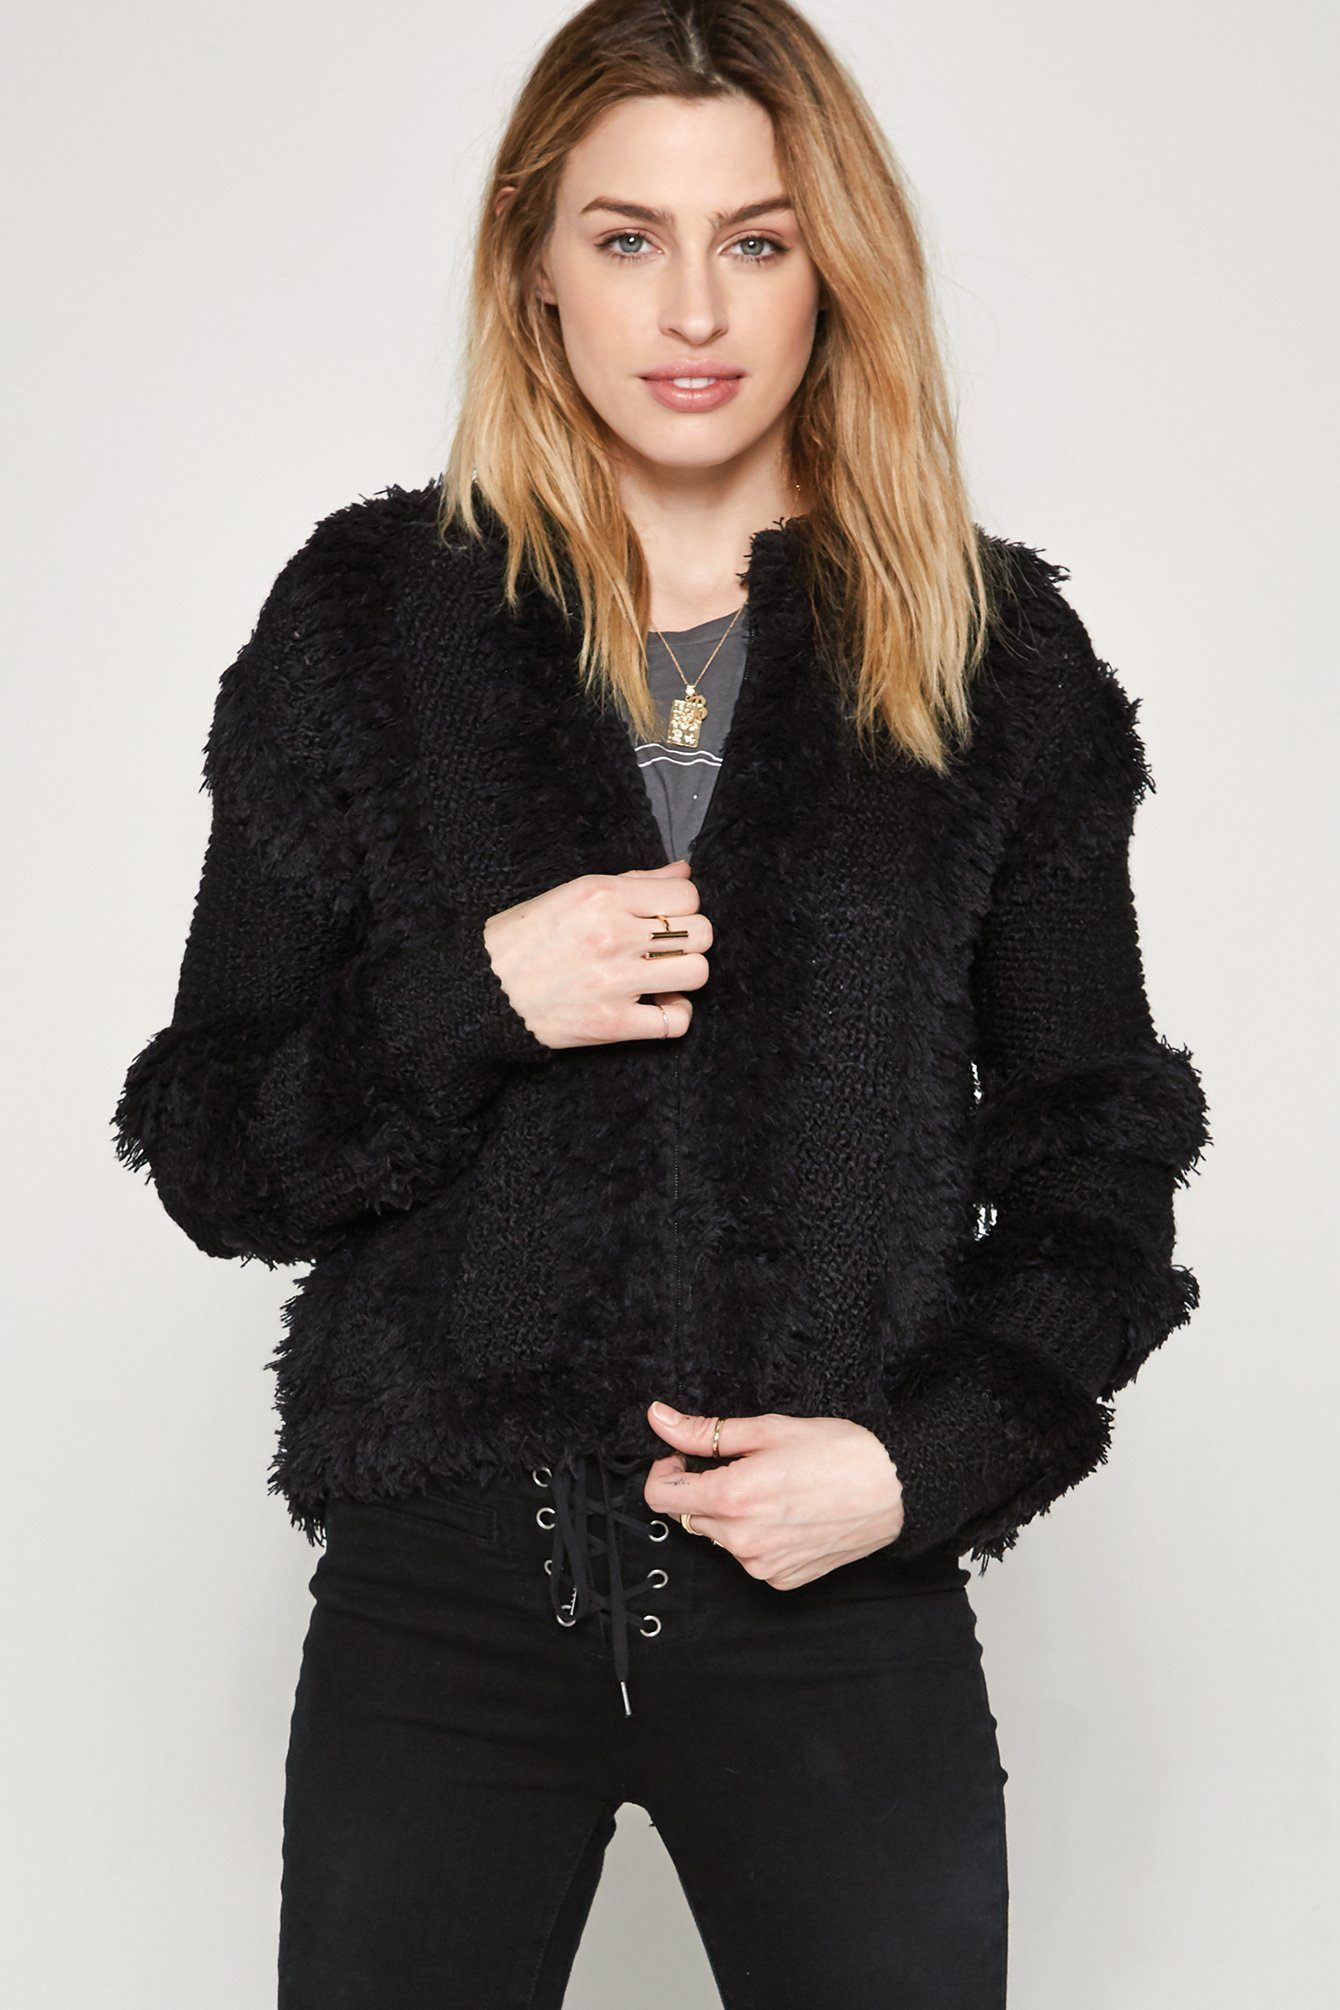 Chill Out Sweater Jacket Zip up sweater, Sweaters, Black